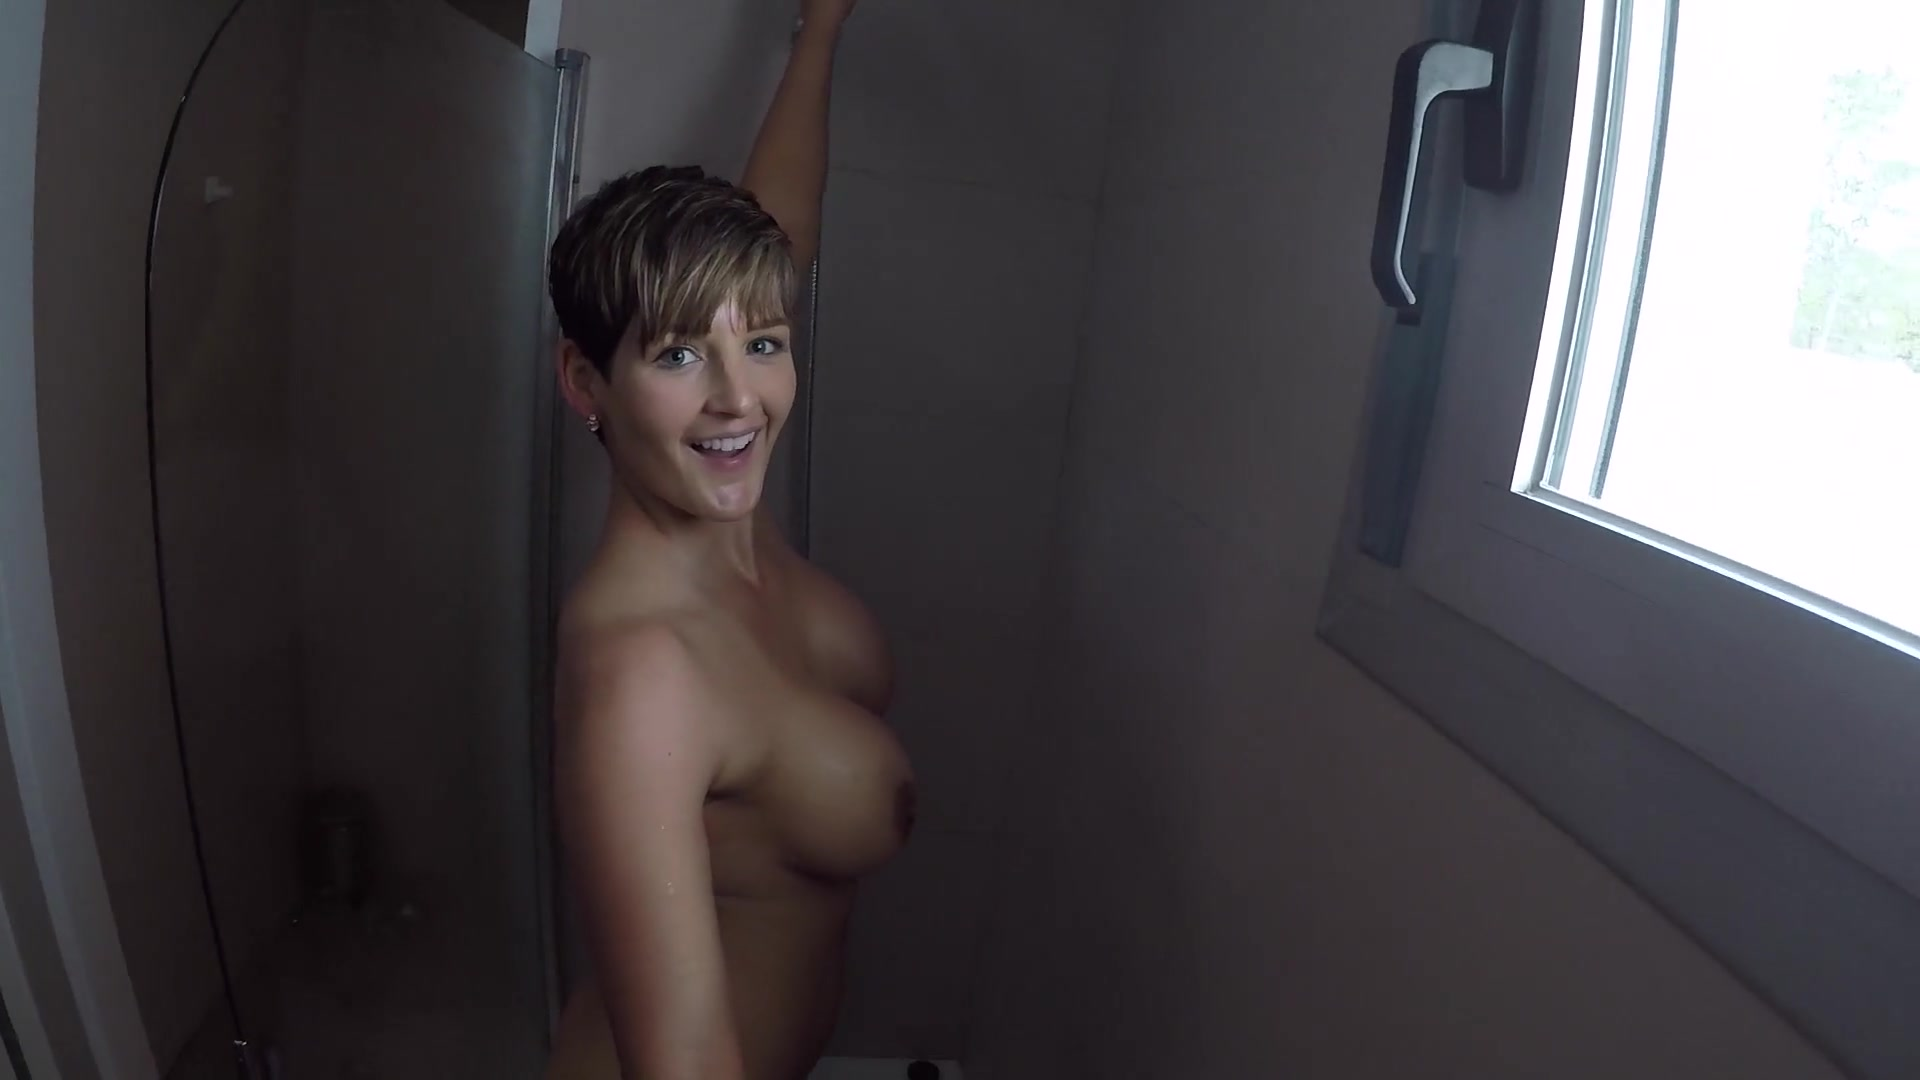 Alisa Tomei Porn hannah brooks nude – #thefappening